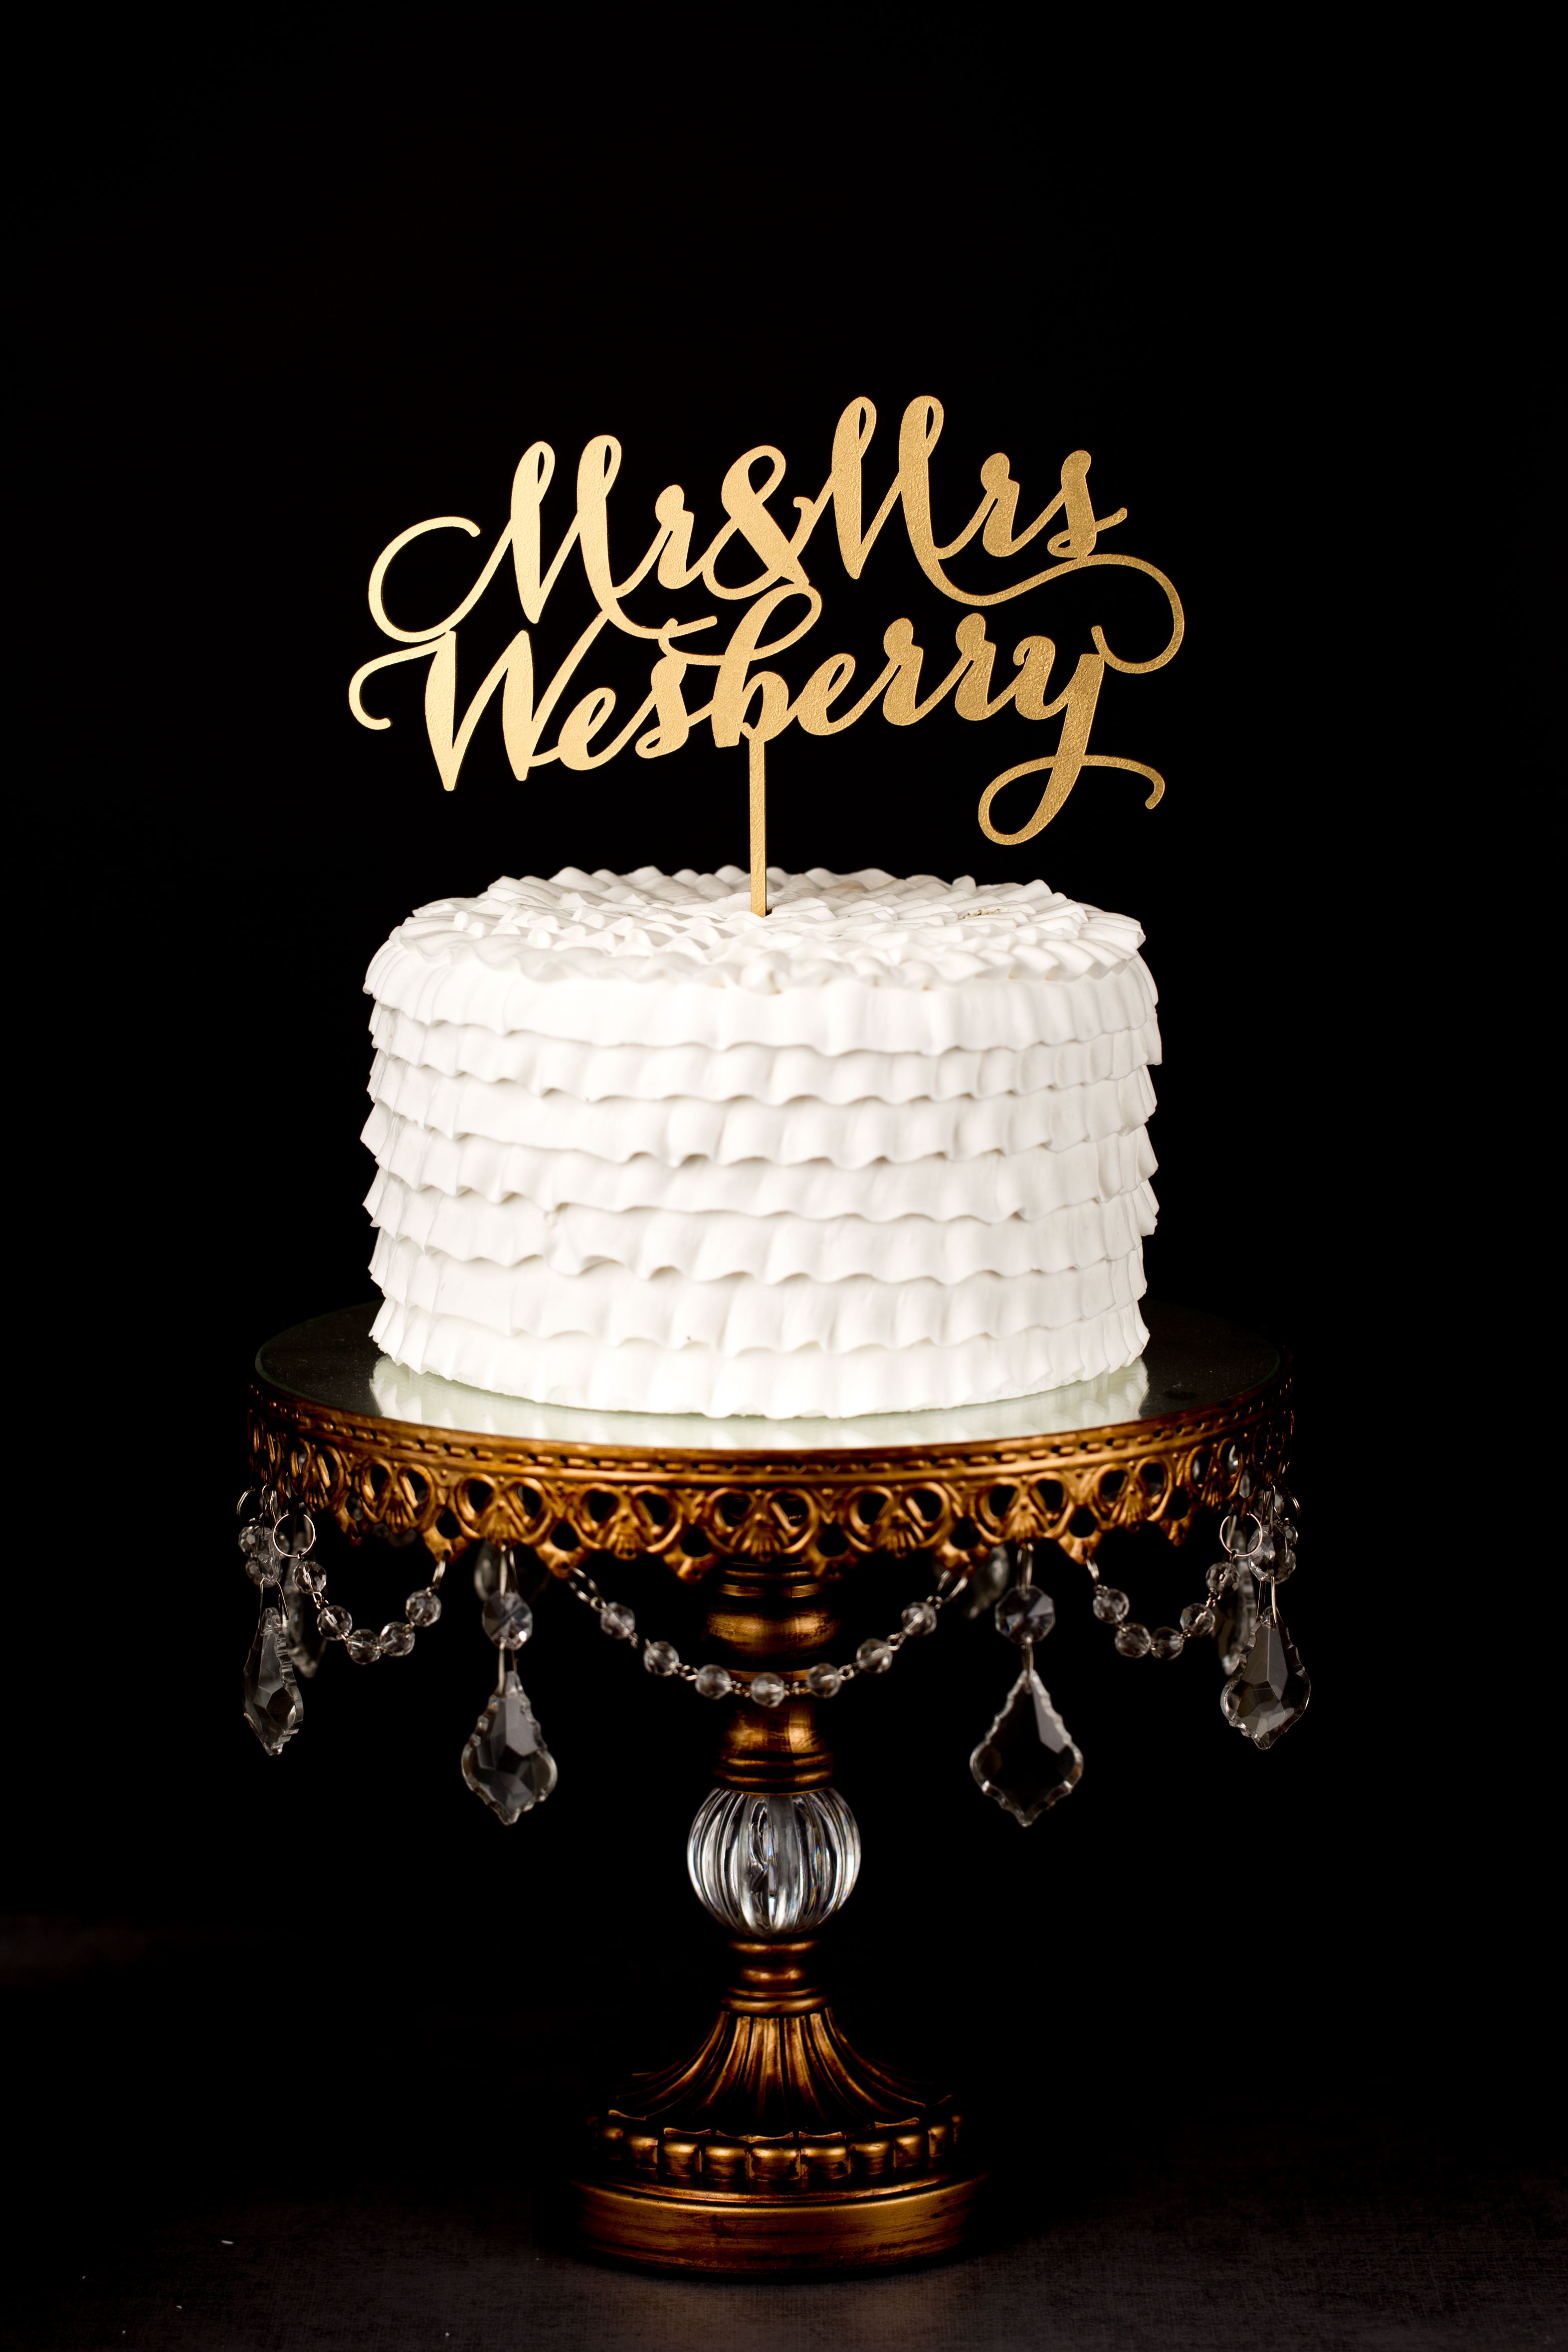 Pin By Better Off Wed On Better Off Wed Custom Toppers Happy Anniversary Cakes Happy Birthday Cake Topper Marriage Anniversary Cake